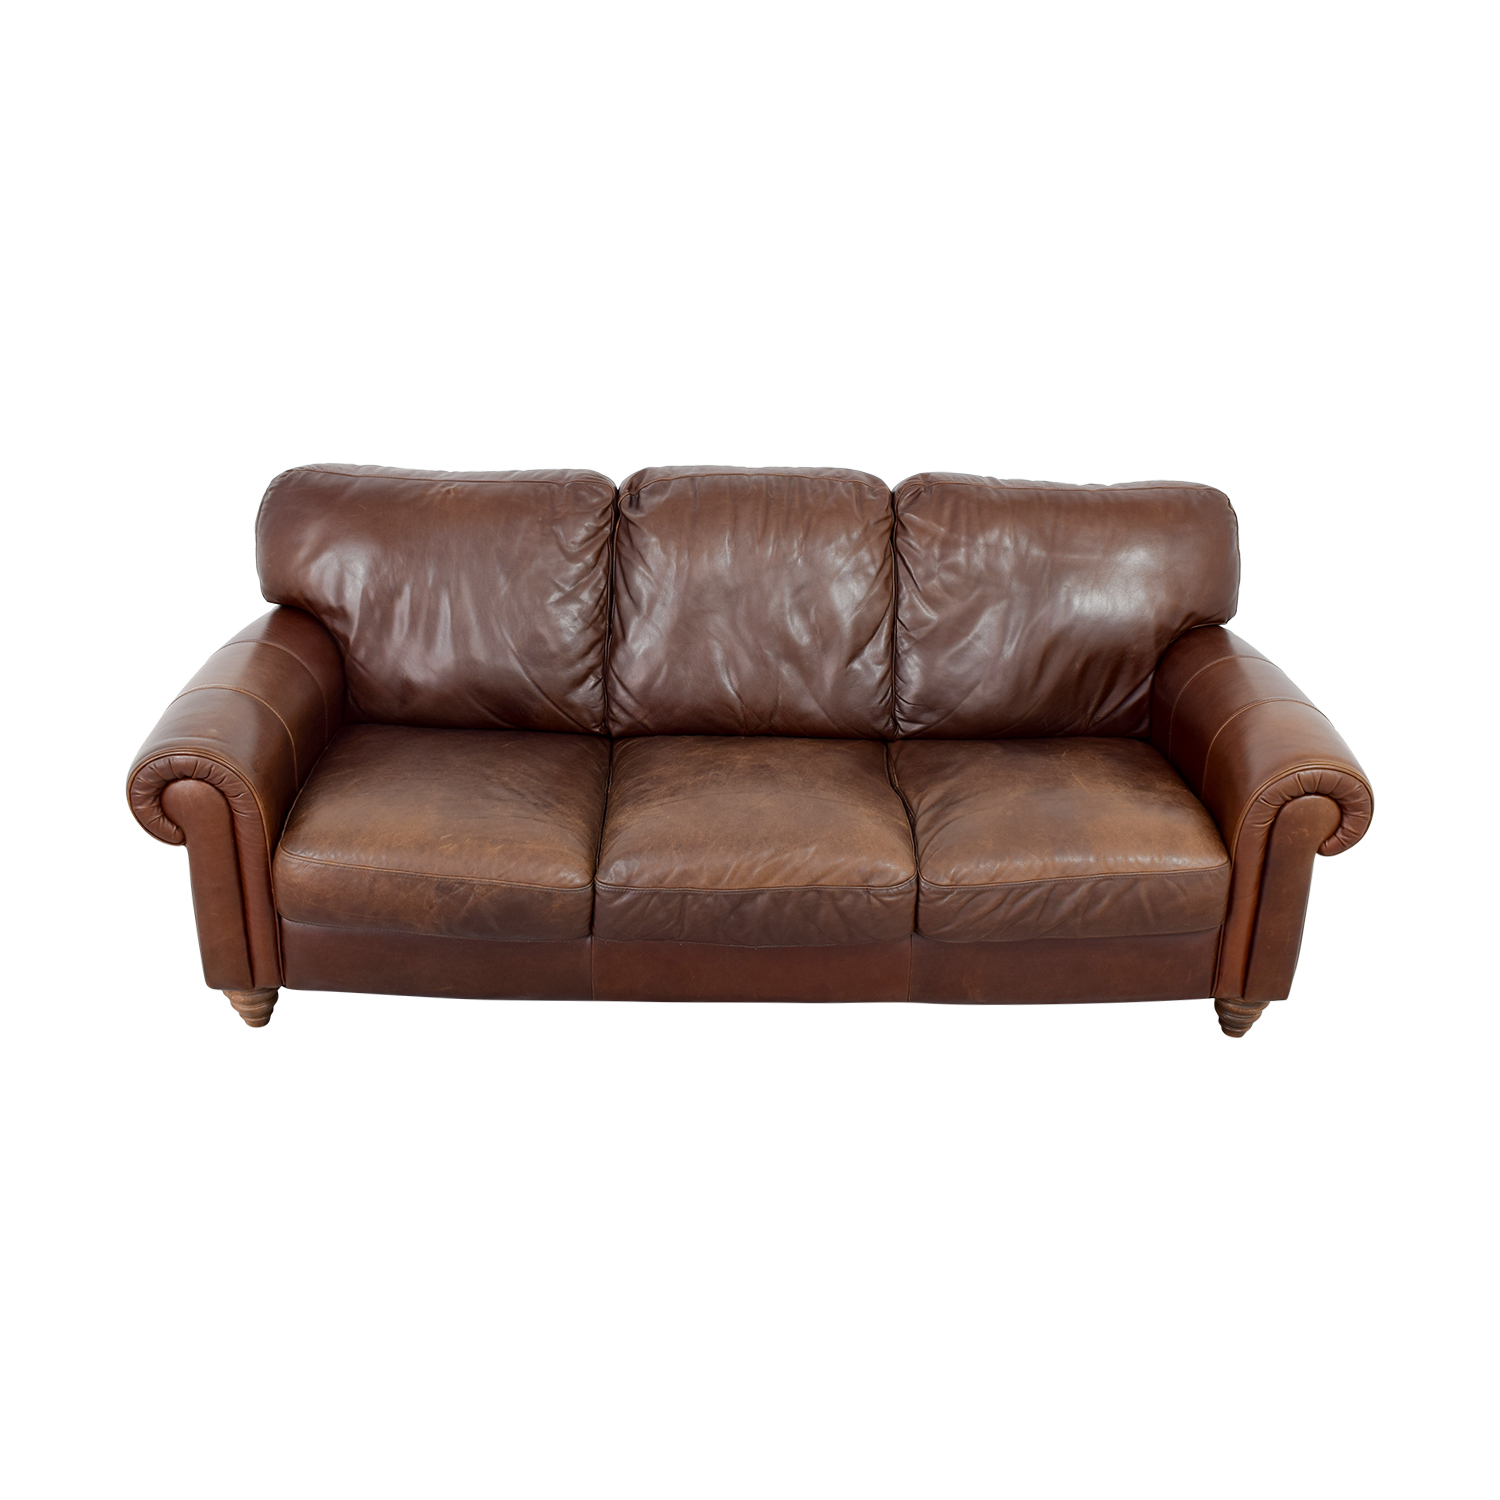 shop Brown Three-Cushion Leather Couch online